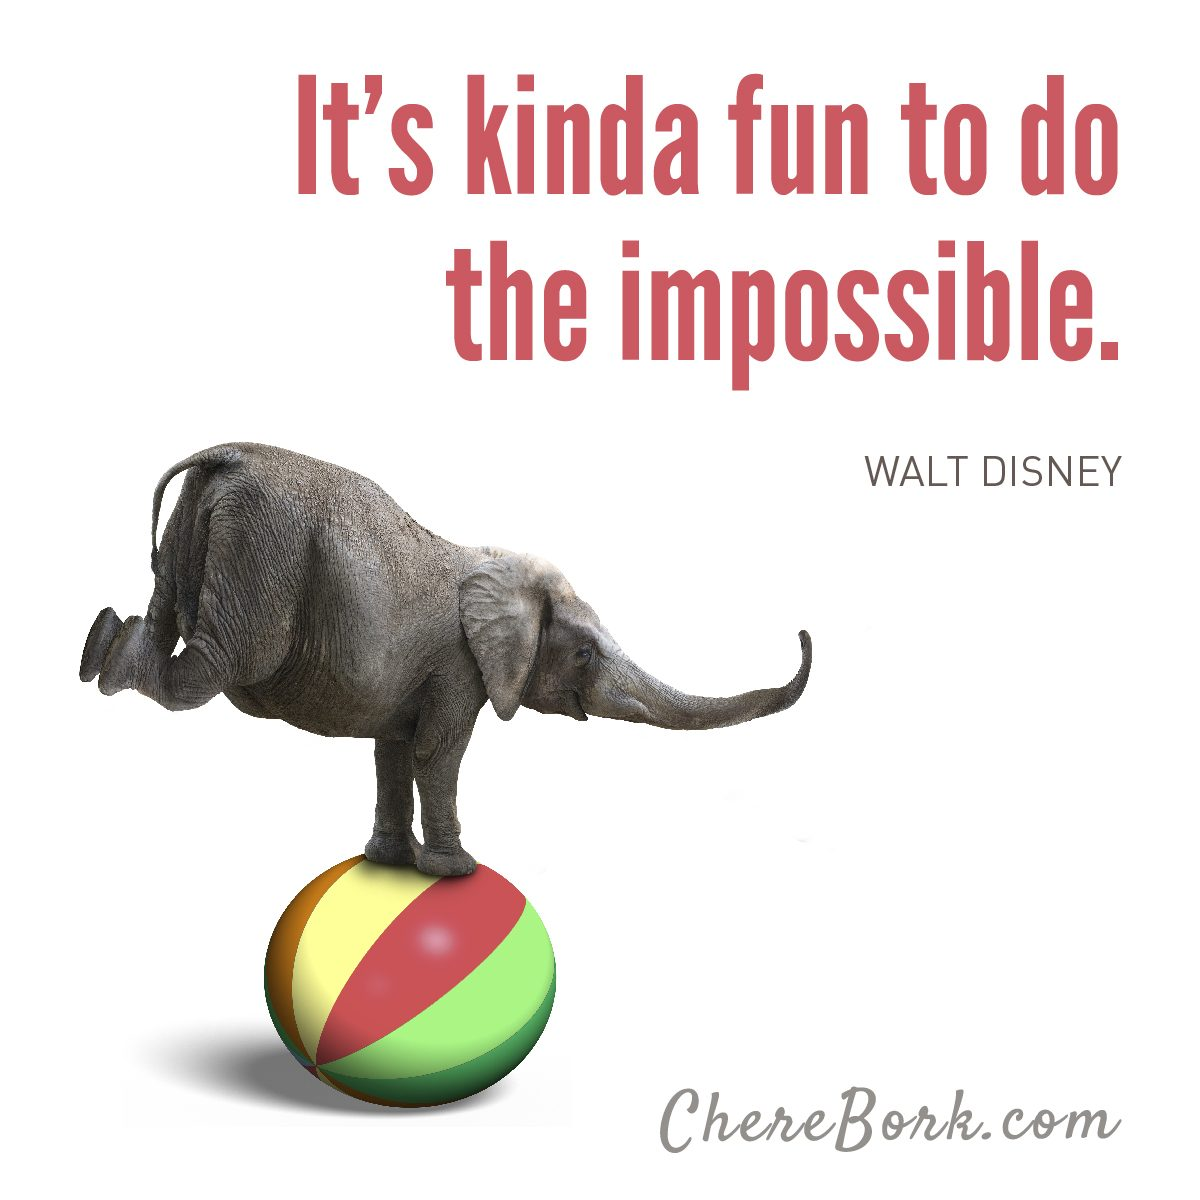 It's kinda fun to do the impossible. -Walt Disney